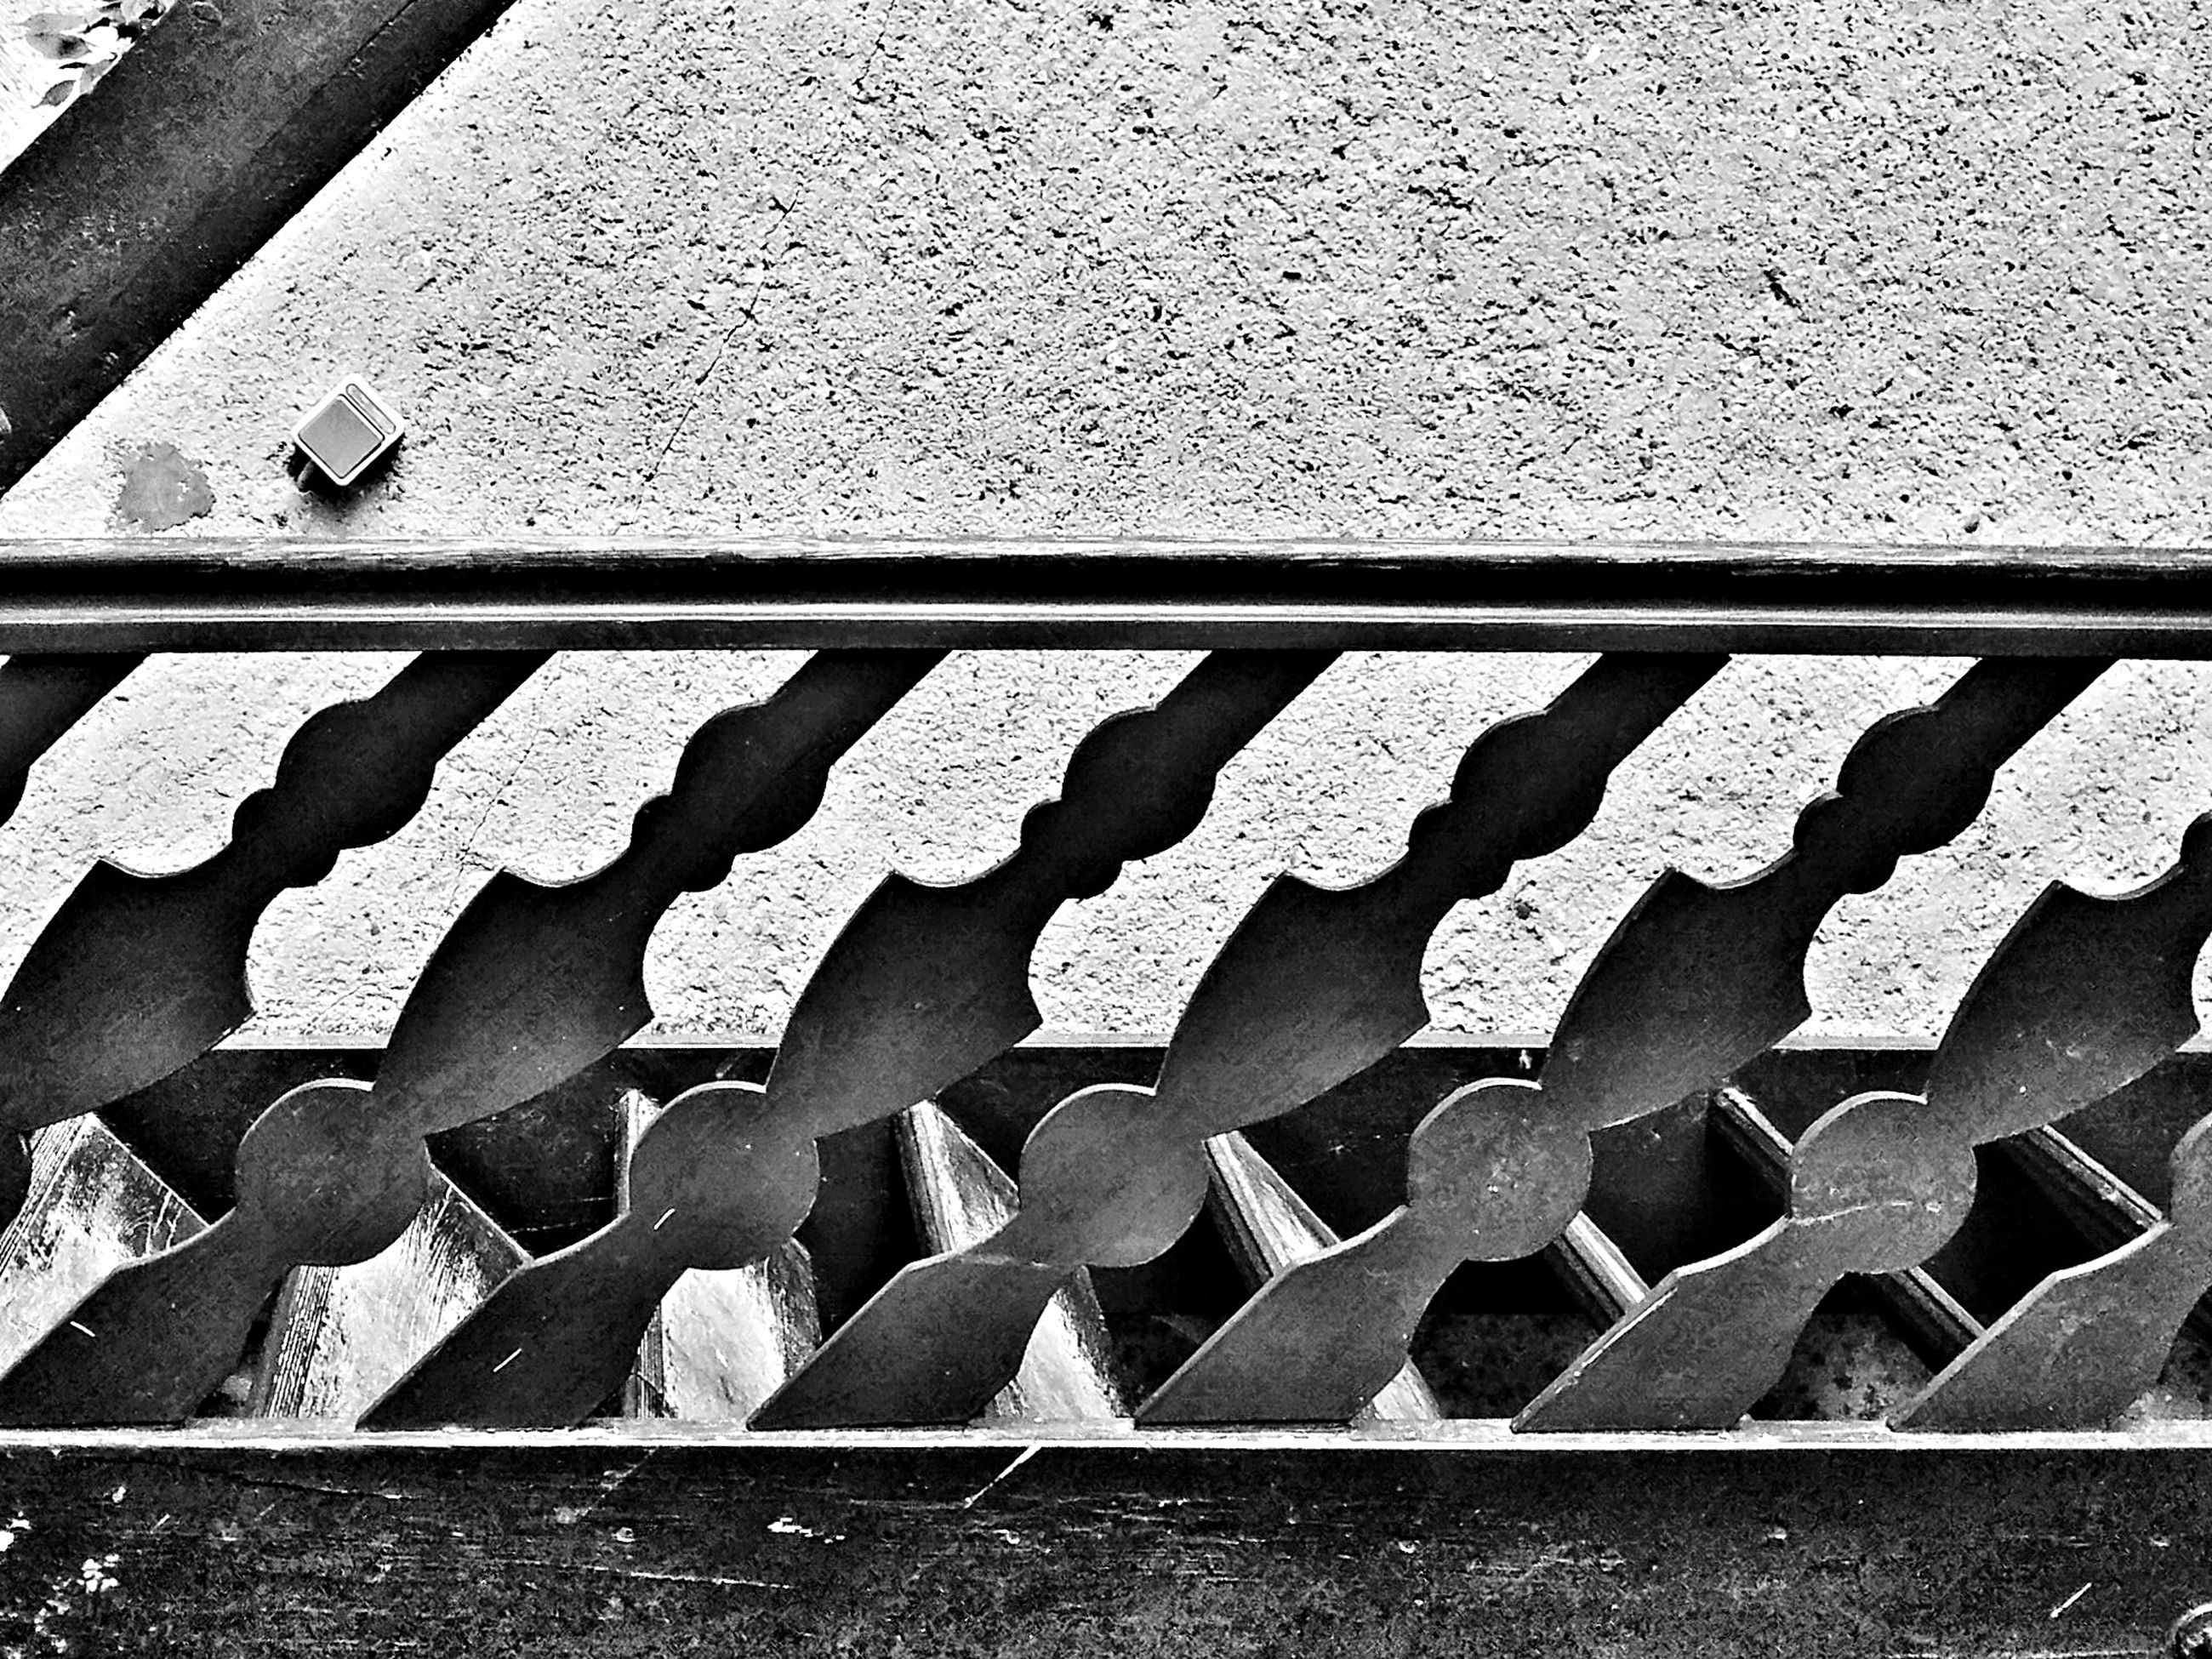 metal, day, no people, outdoors, large group of objects, sunlight, close-up, metal industry